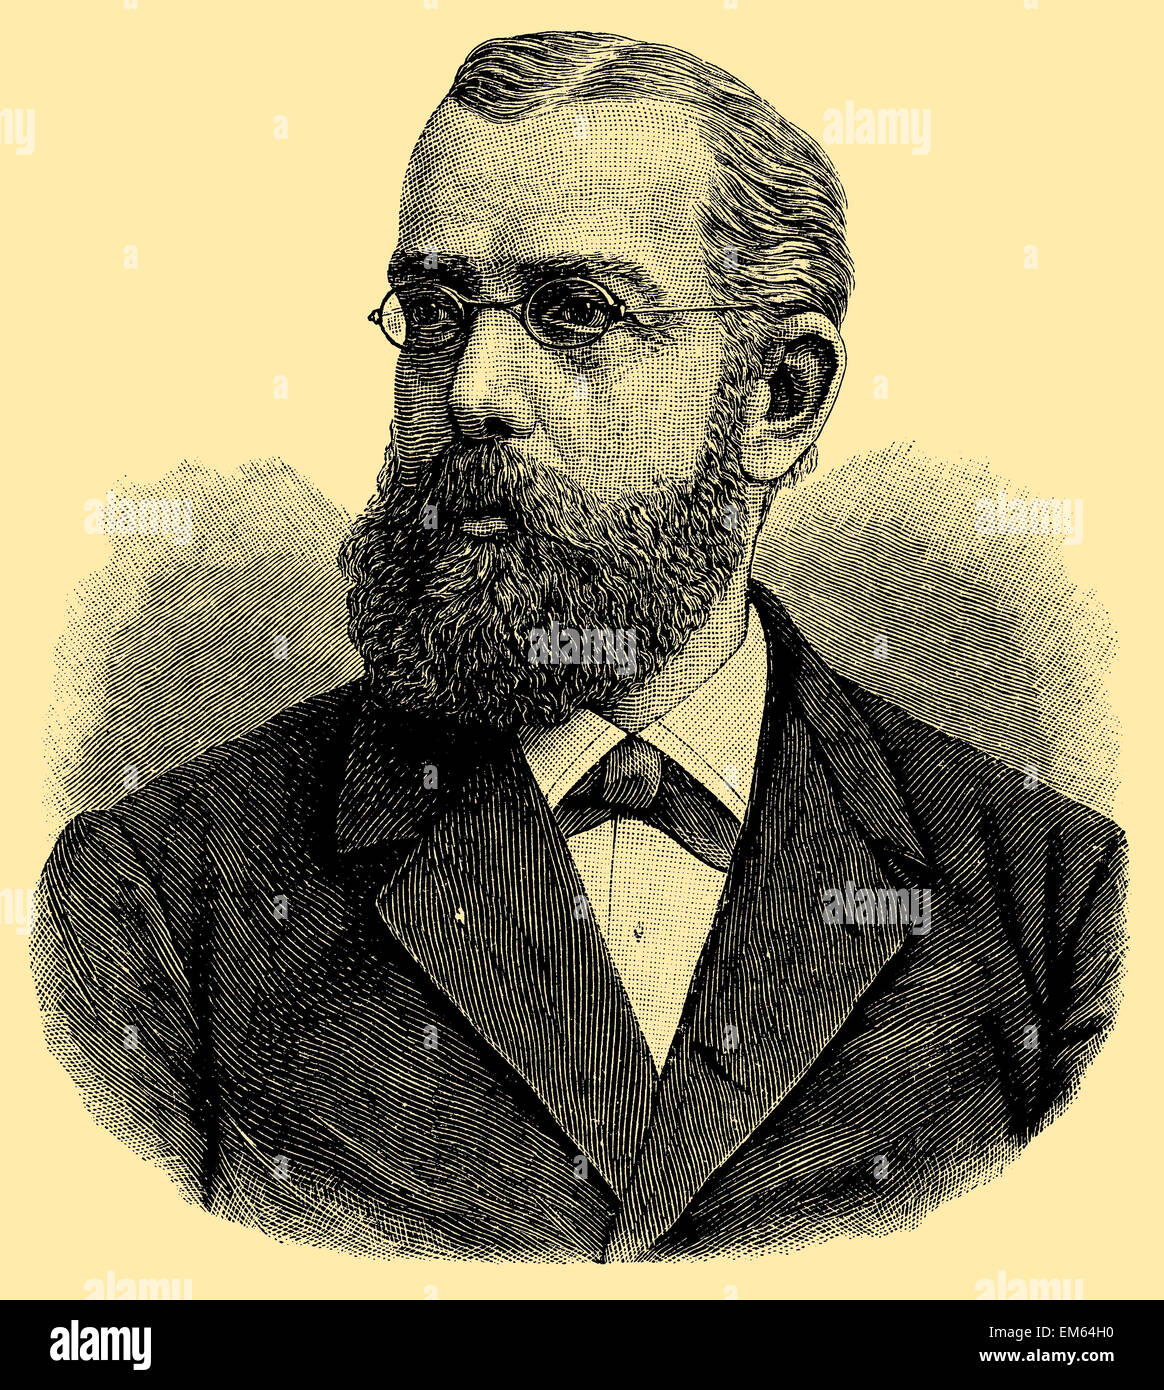 Robert Koch, German physician, discoverer of the tubercle and cholera bacilli, Nobel Prize in Medicine laureate in 1905 Stock Photo